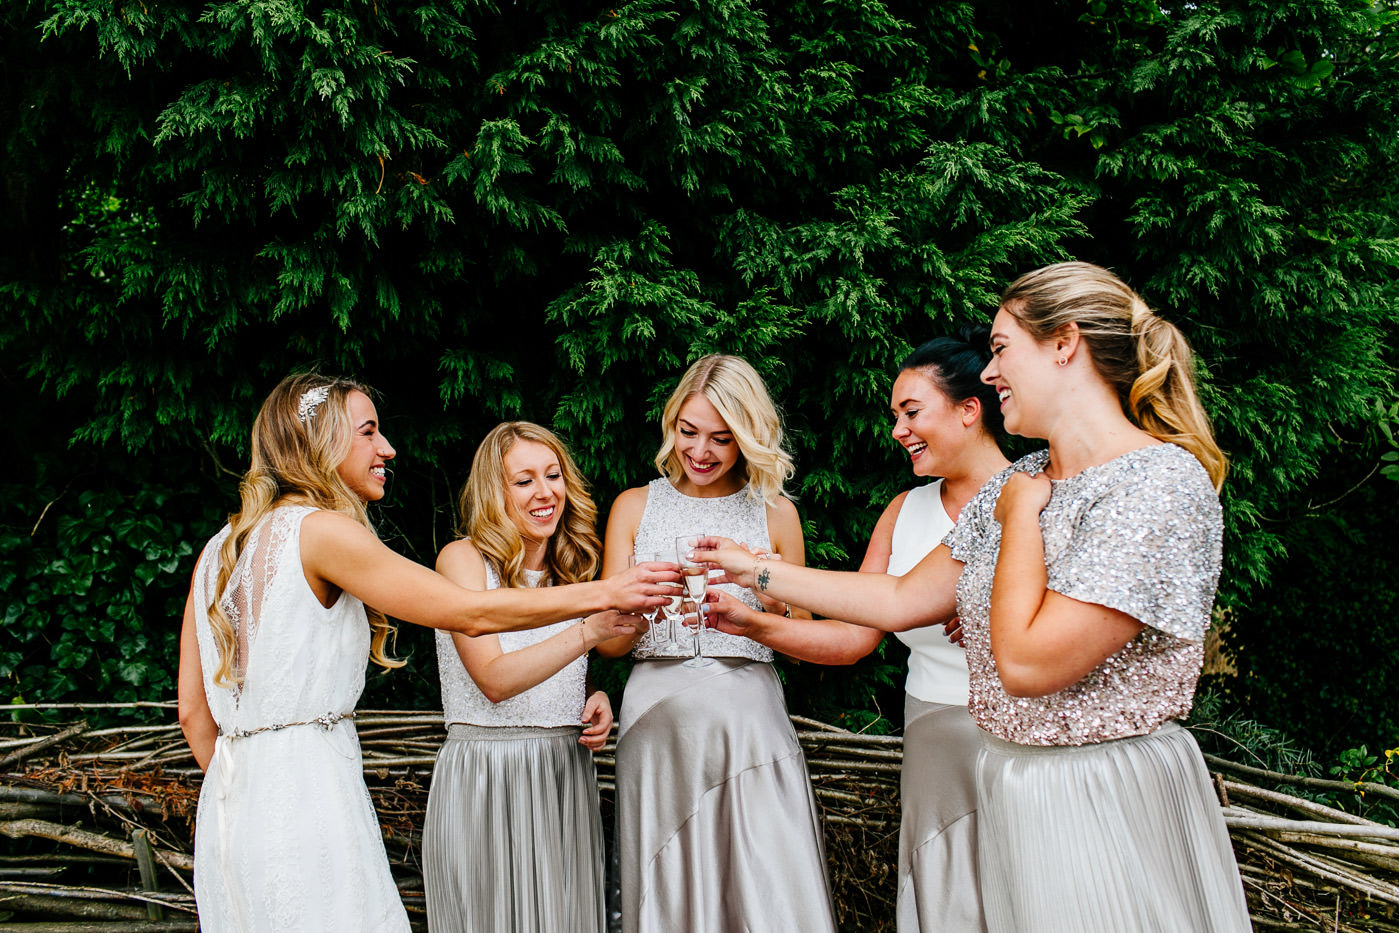 The-bell-in-Ticehurst-pub-kent-wedding-photographer-London-Epic-Love-Story-039